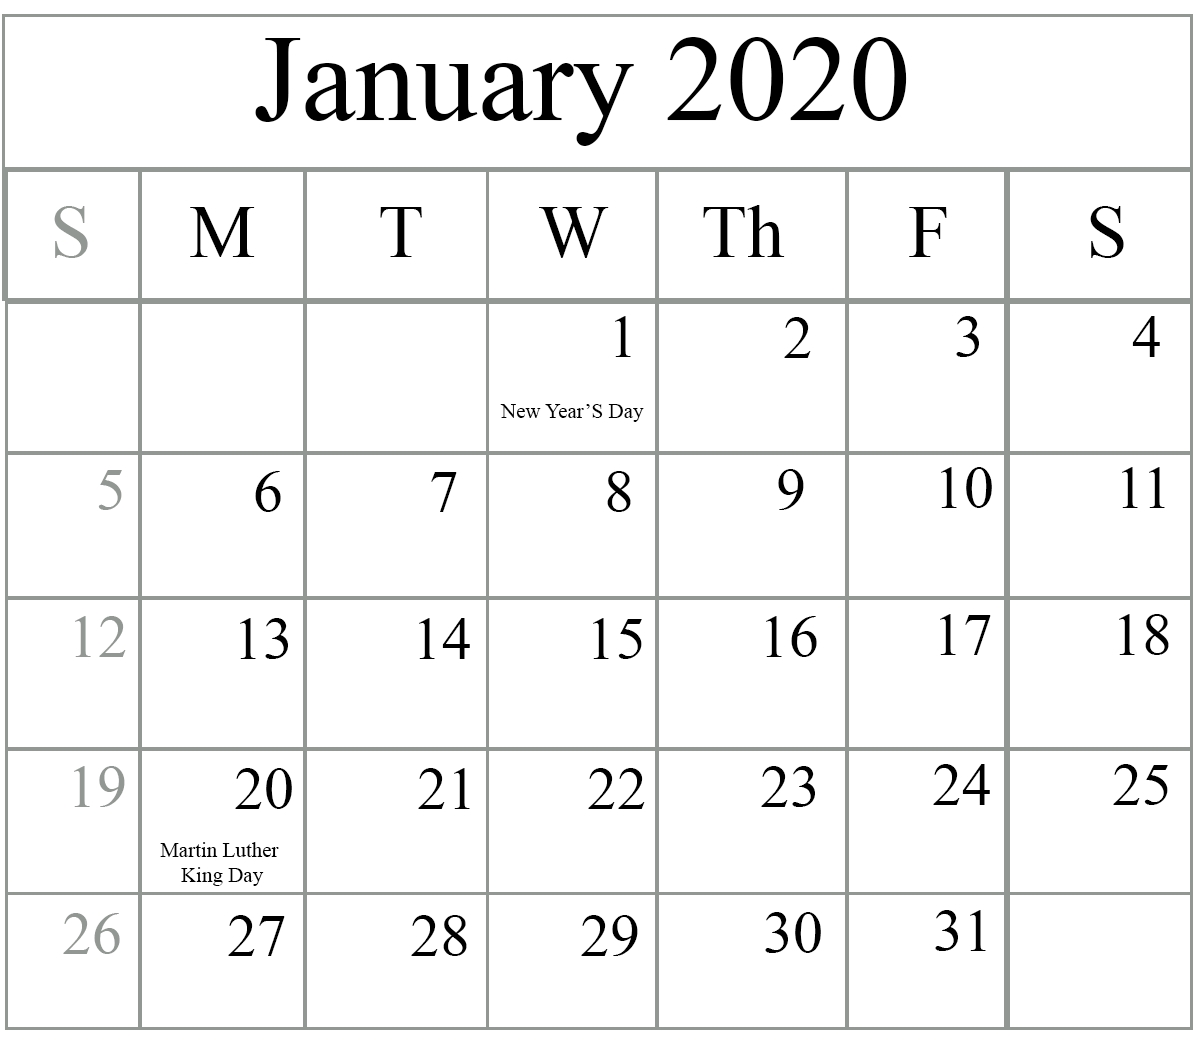 Free January 2020 Printable Calendar In Pdf, Excel & Word-January 2020 Calendar With Holidays Printable